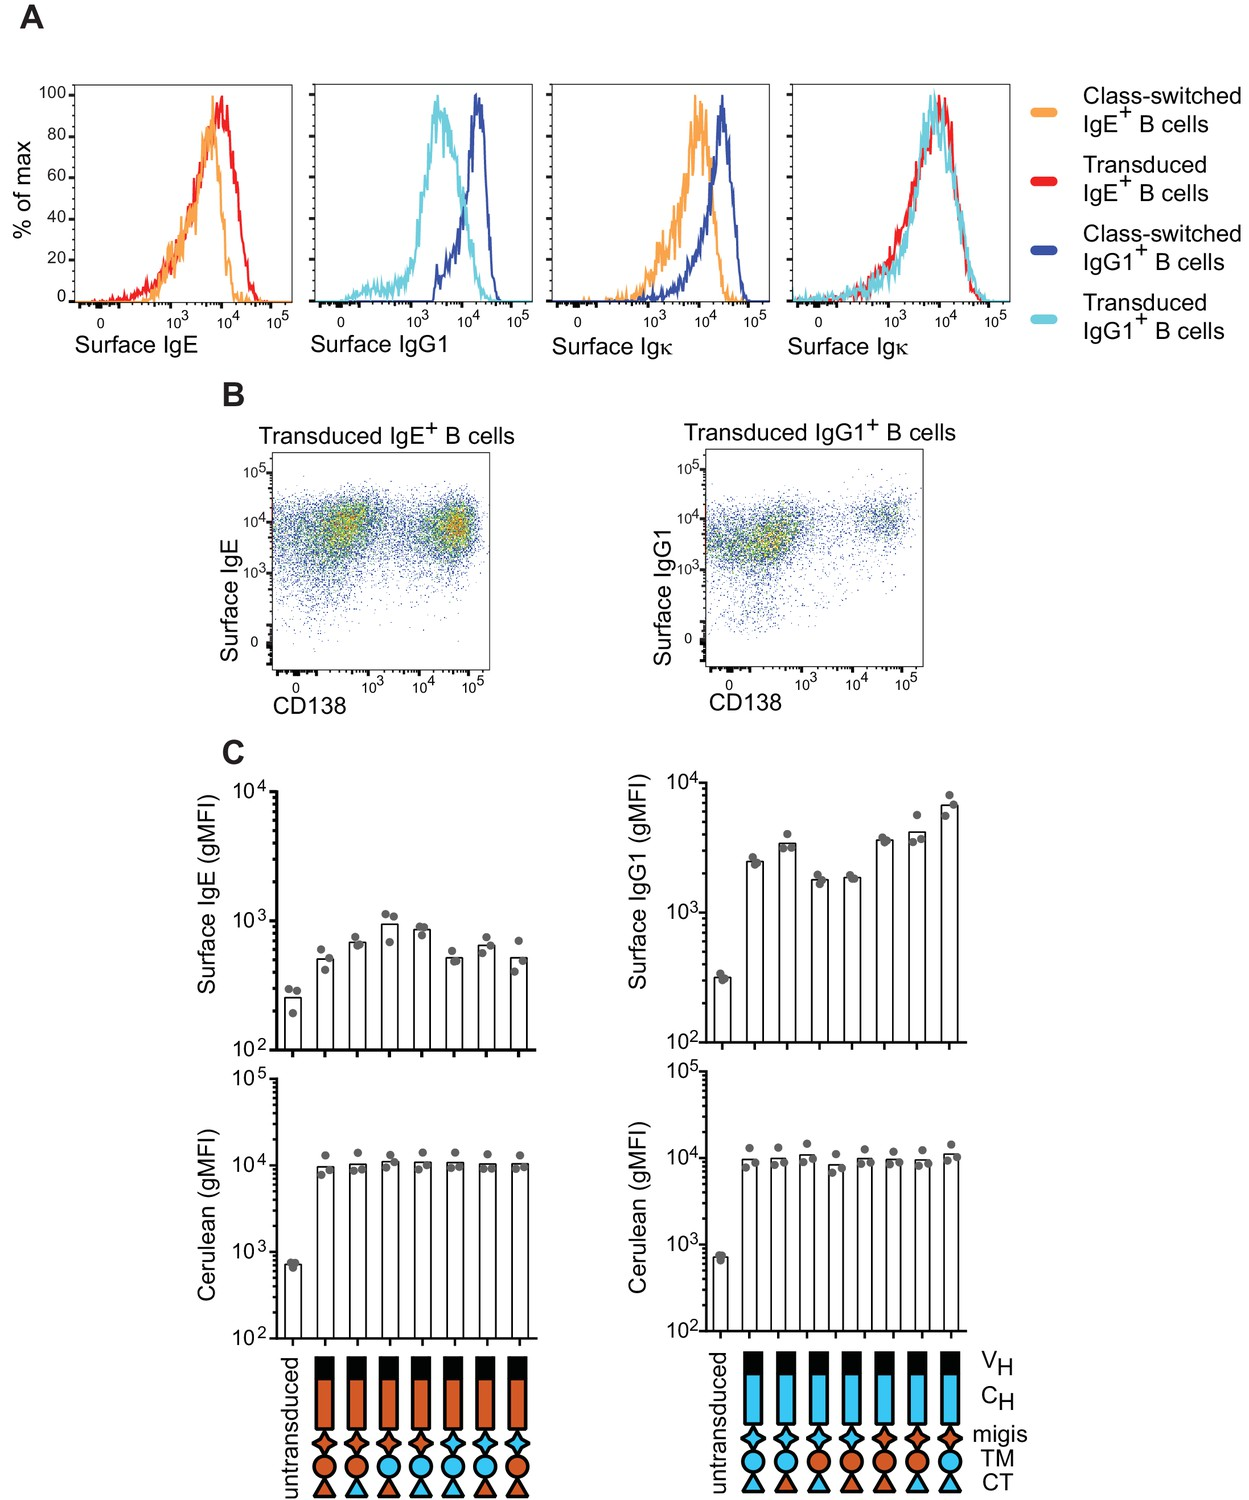 Regulation Of B Cell Fate By Chronic Activity The Ige Home Gt Switches Progressive Toggle Switch Surface Expression Bcrs On Naturally Class Switched Versus Transduced Primary Cells